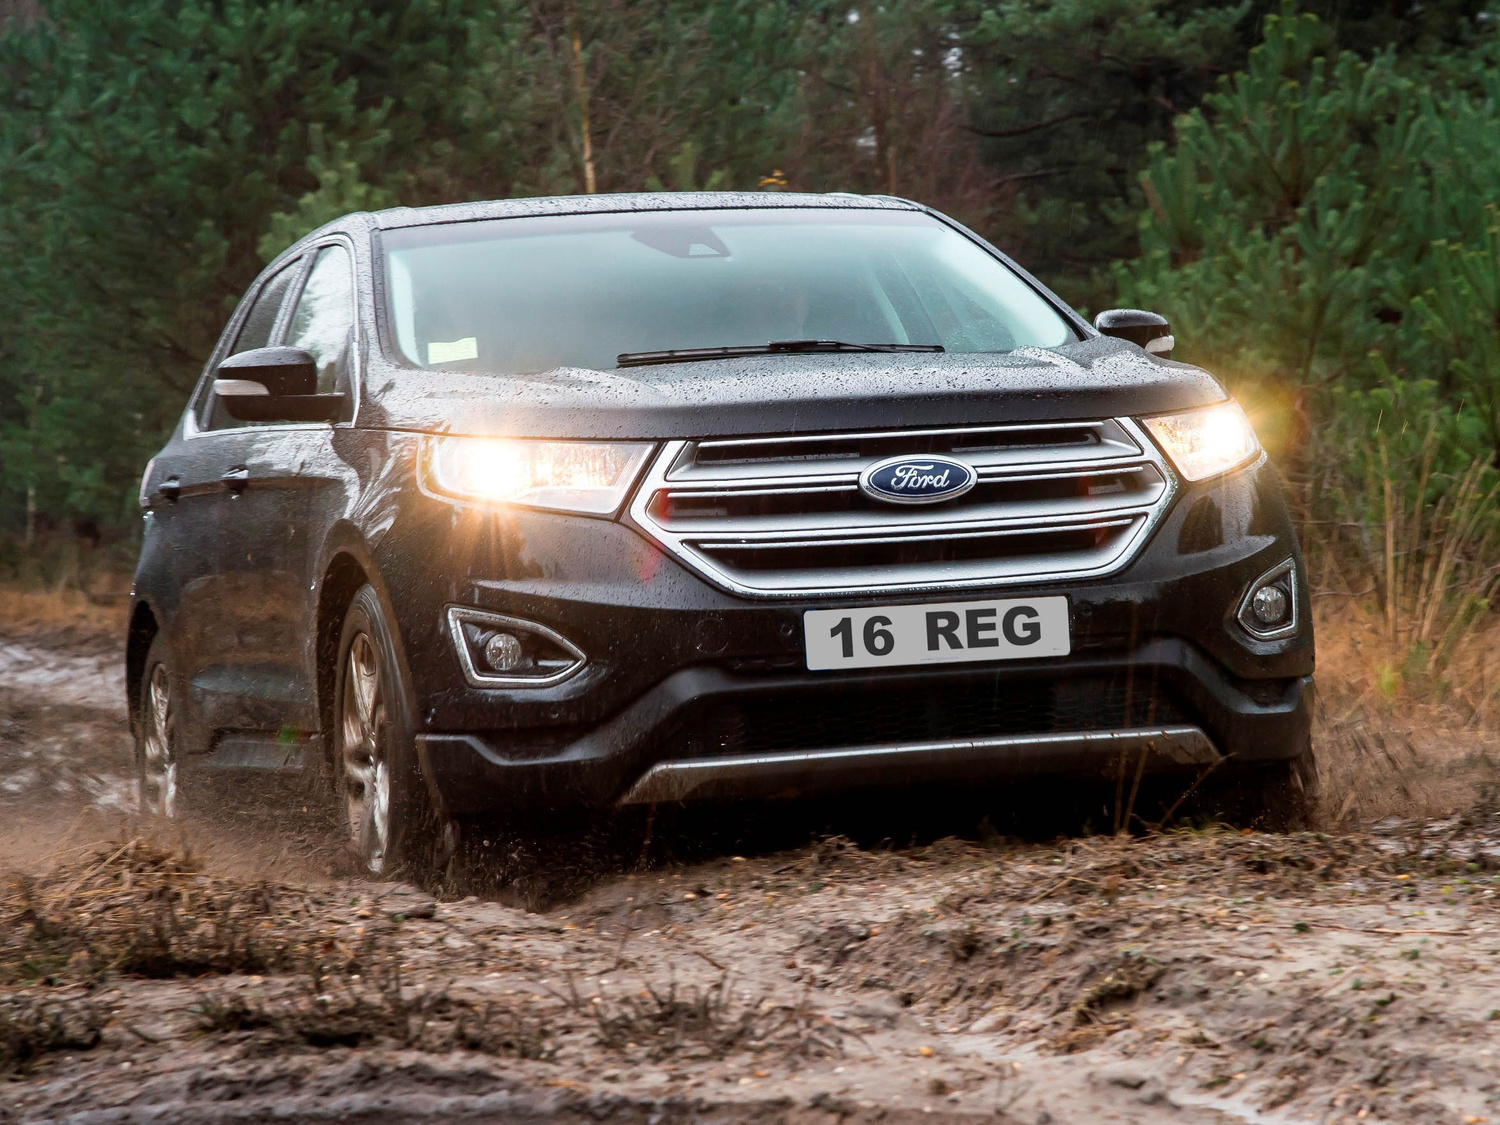 Arriving in uk dealerships this summer the all new edge tops off fords three car suv line up